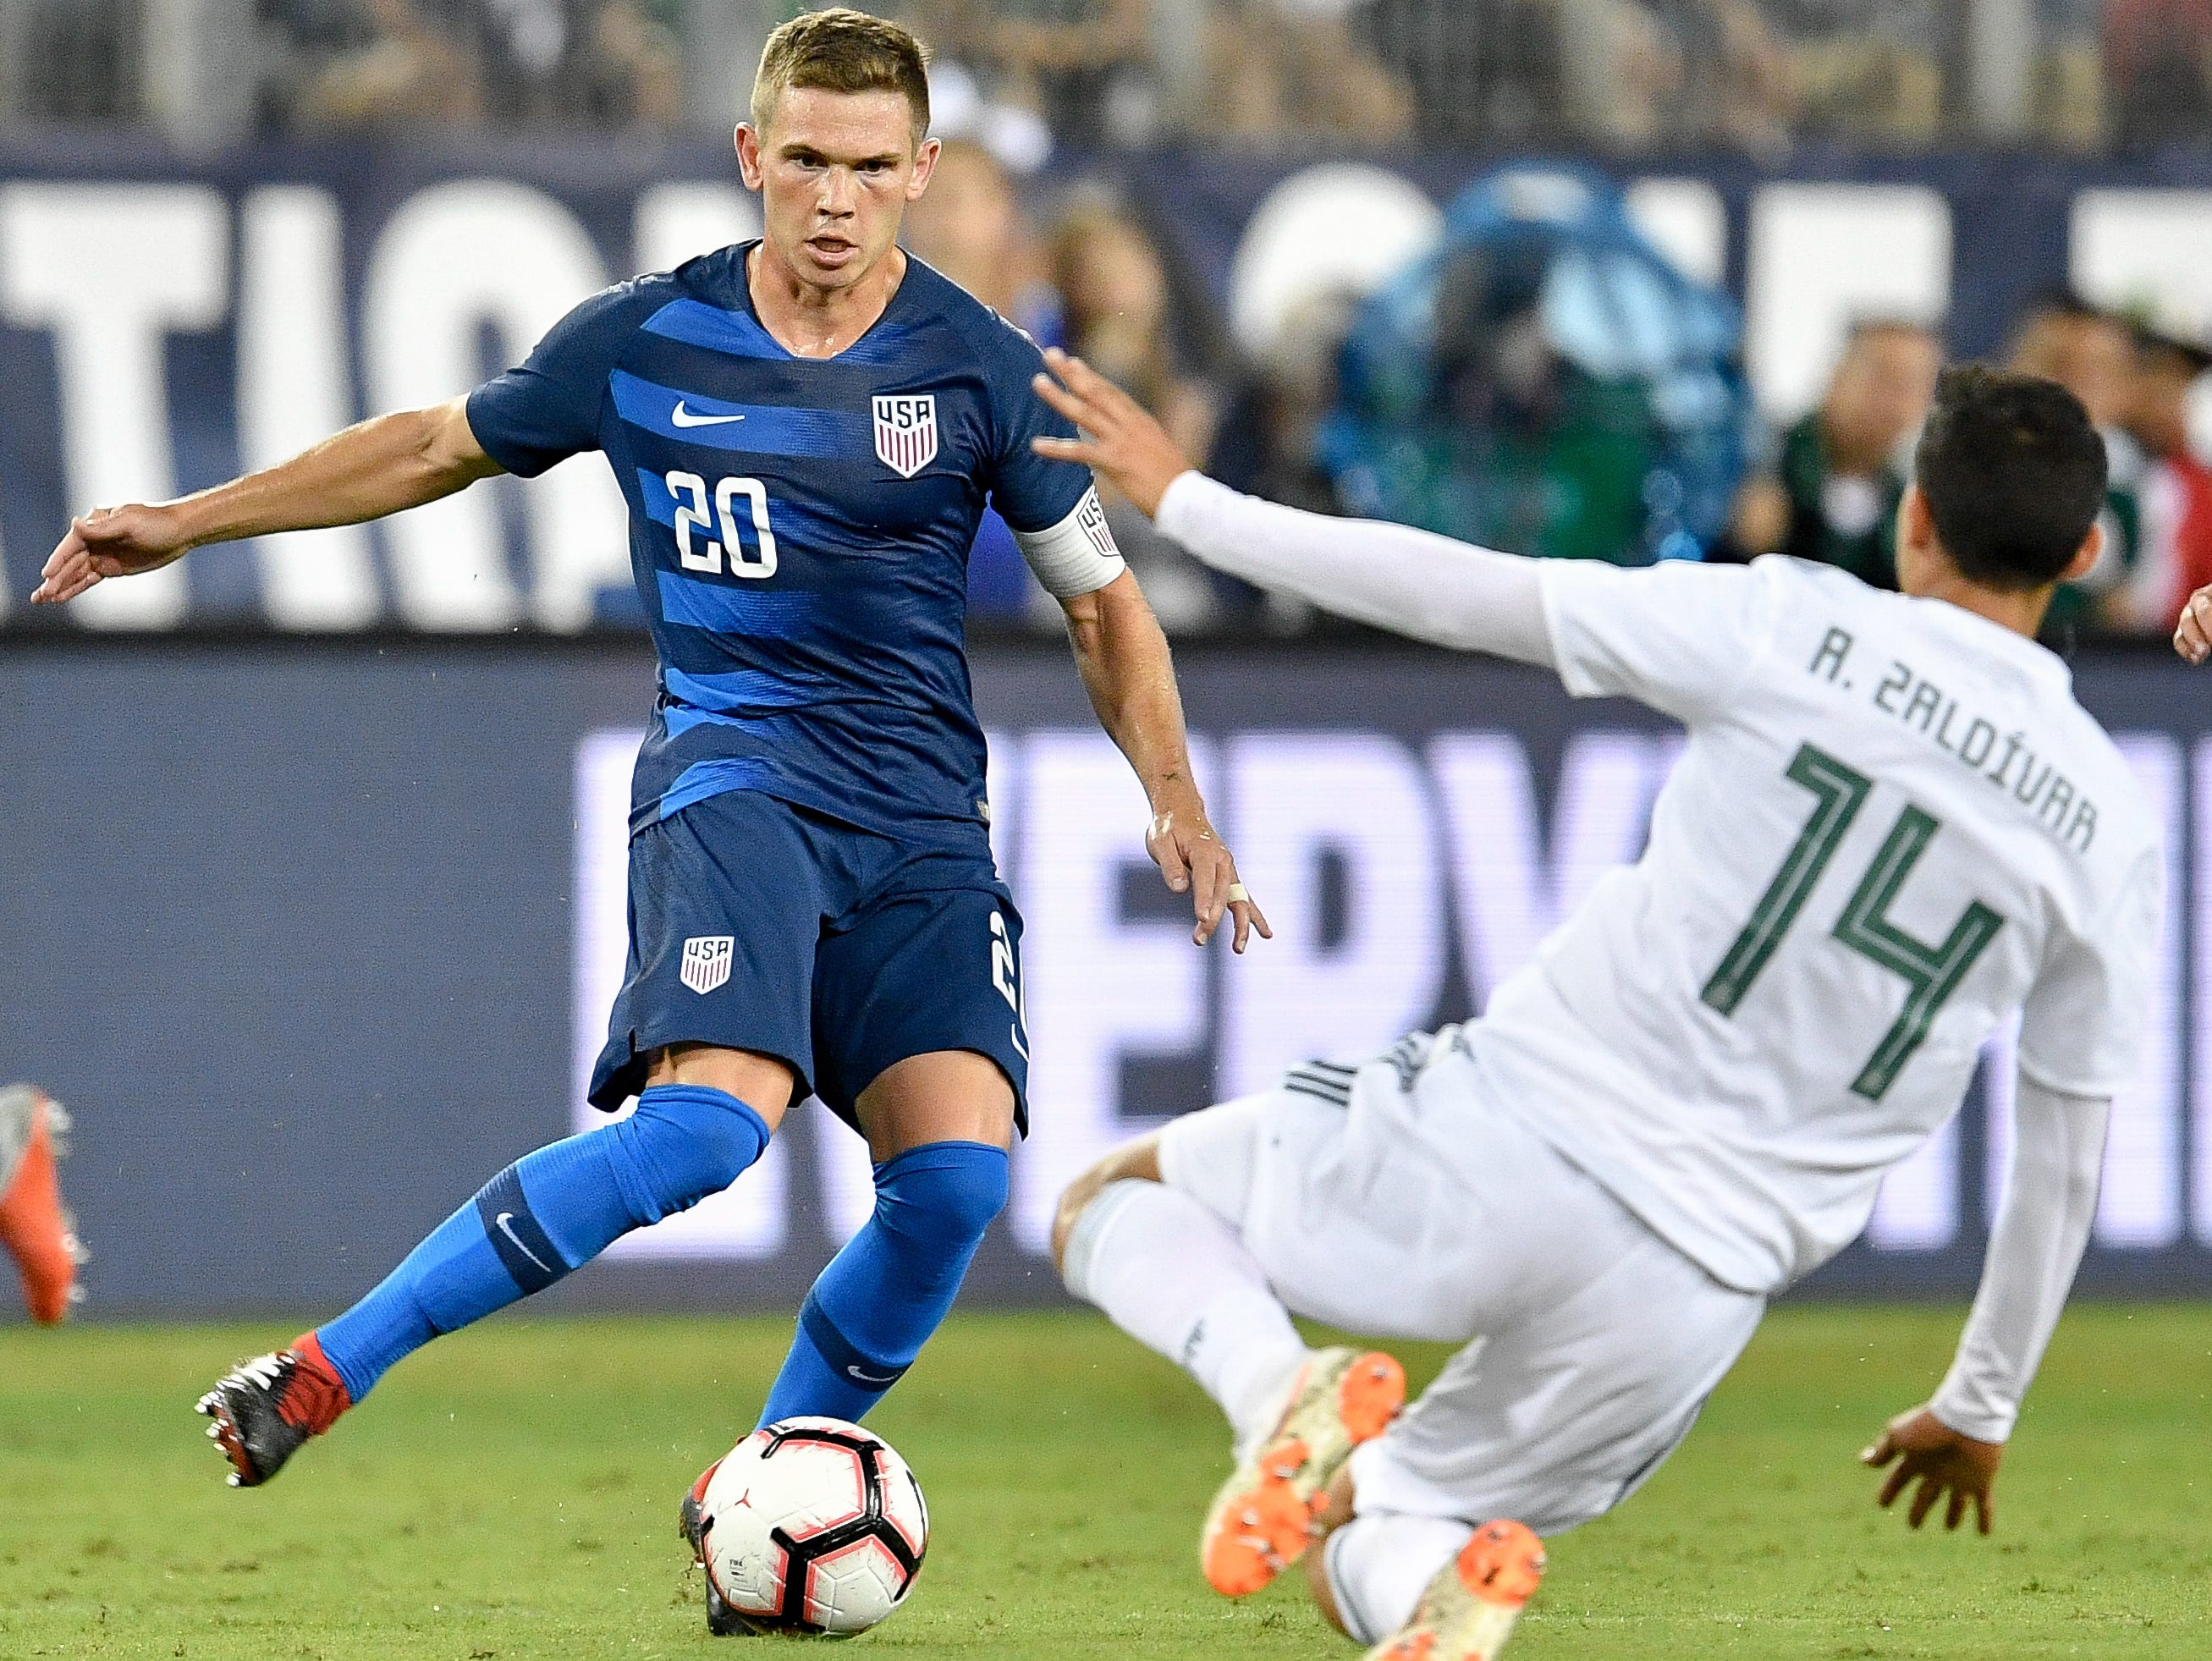 USA midfielder Wil Trapp (20) passes past Mexico forward Angel Zaldivar (14) during the second half at Nissan Stadium in Nashville, Tenn., Tuesday, Sept. 11, 2018.